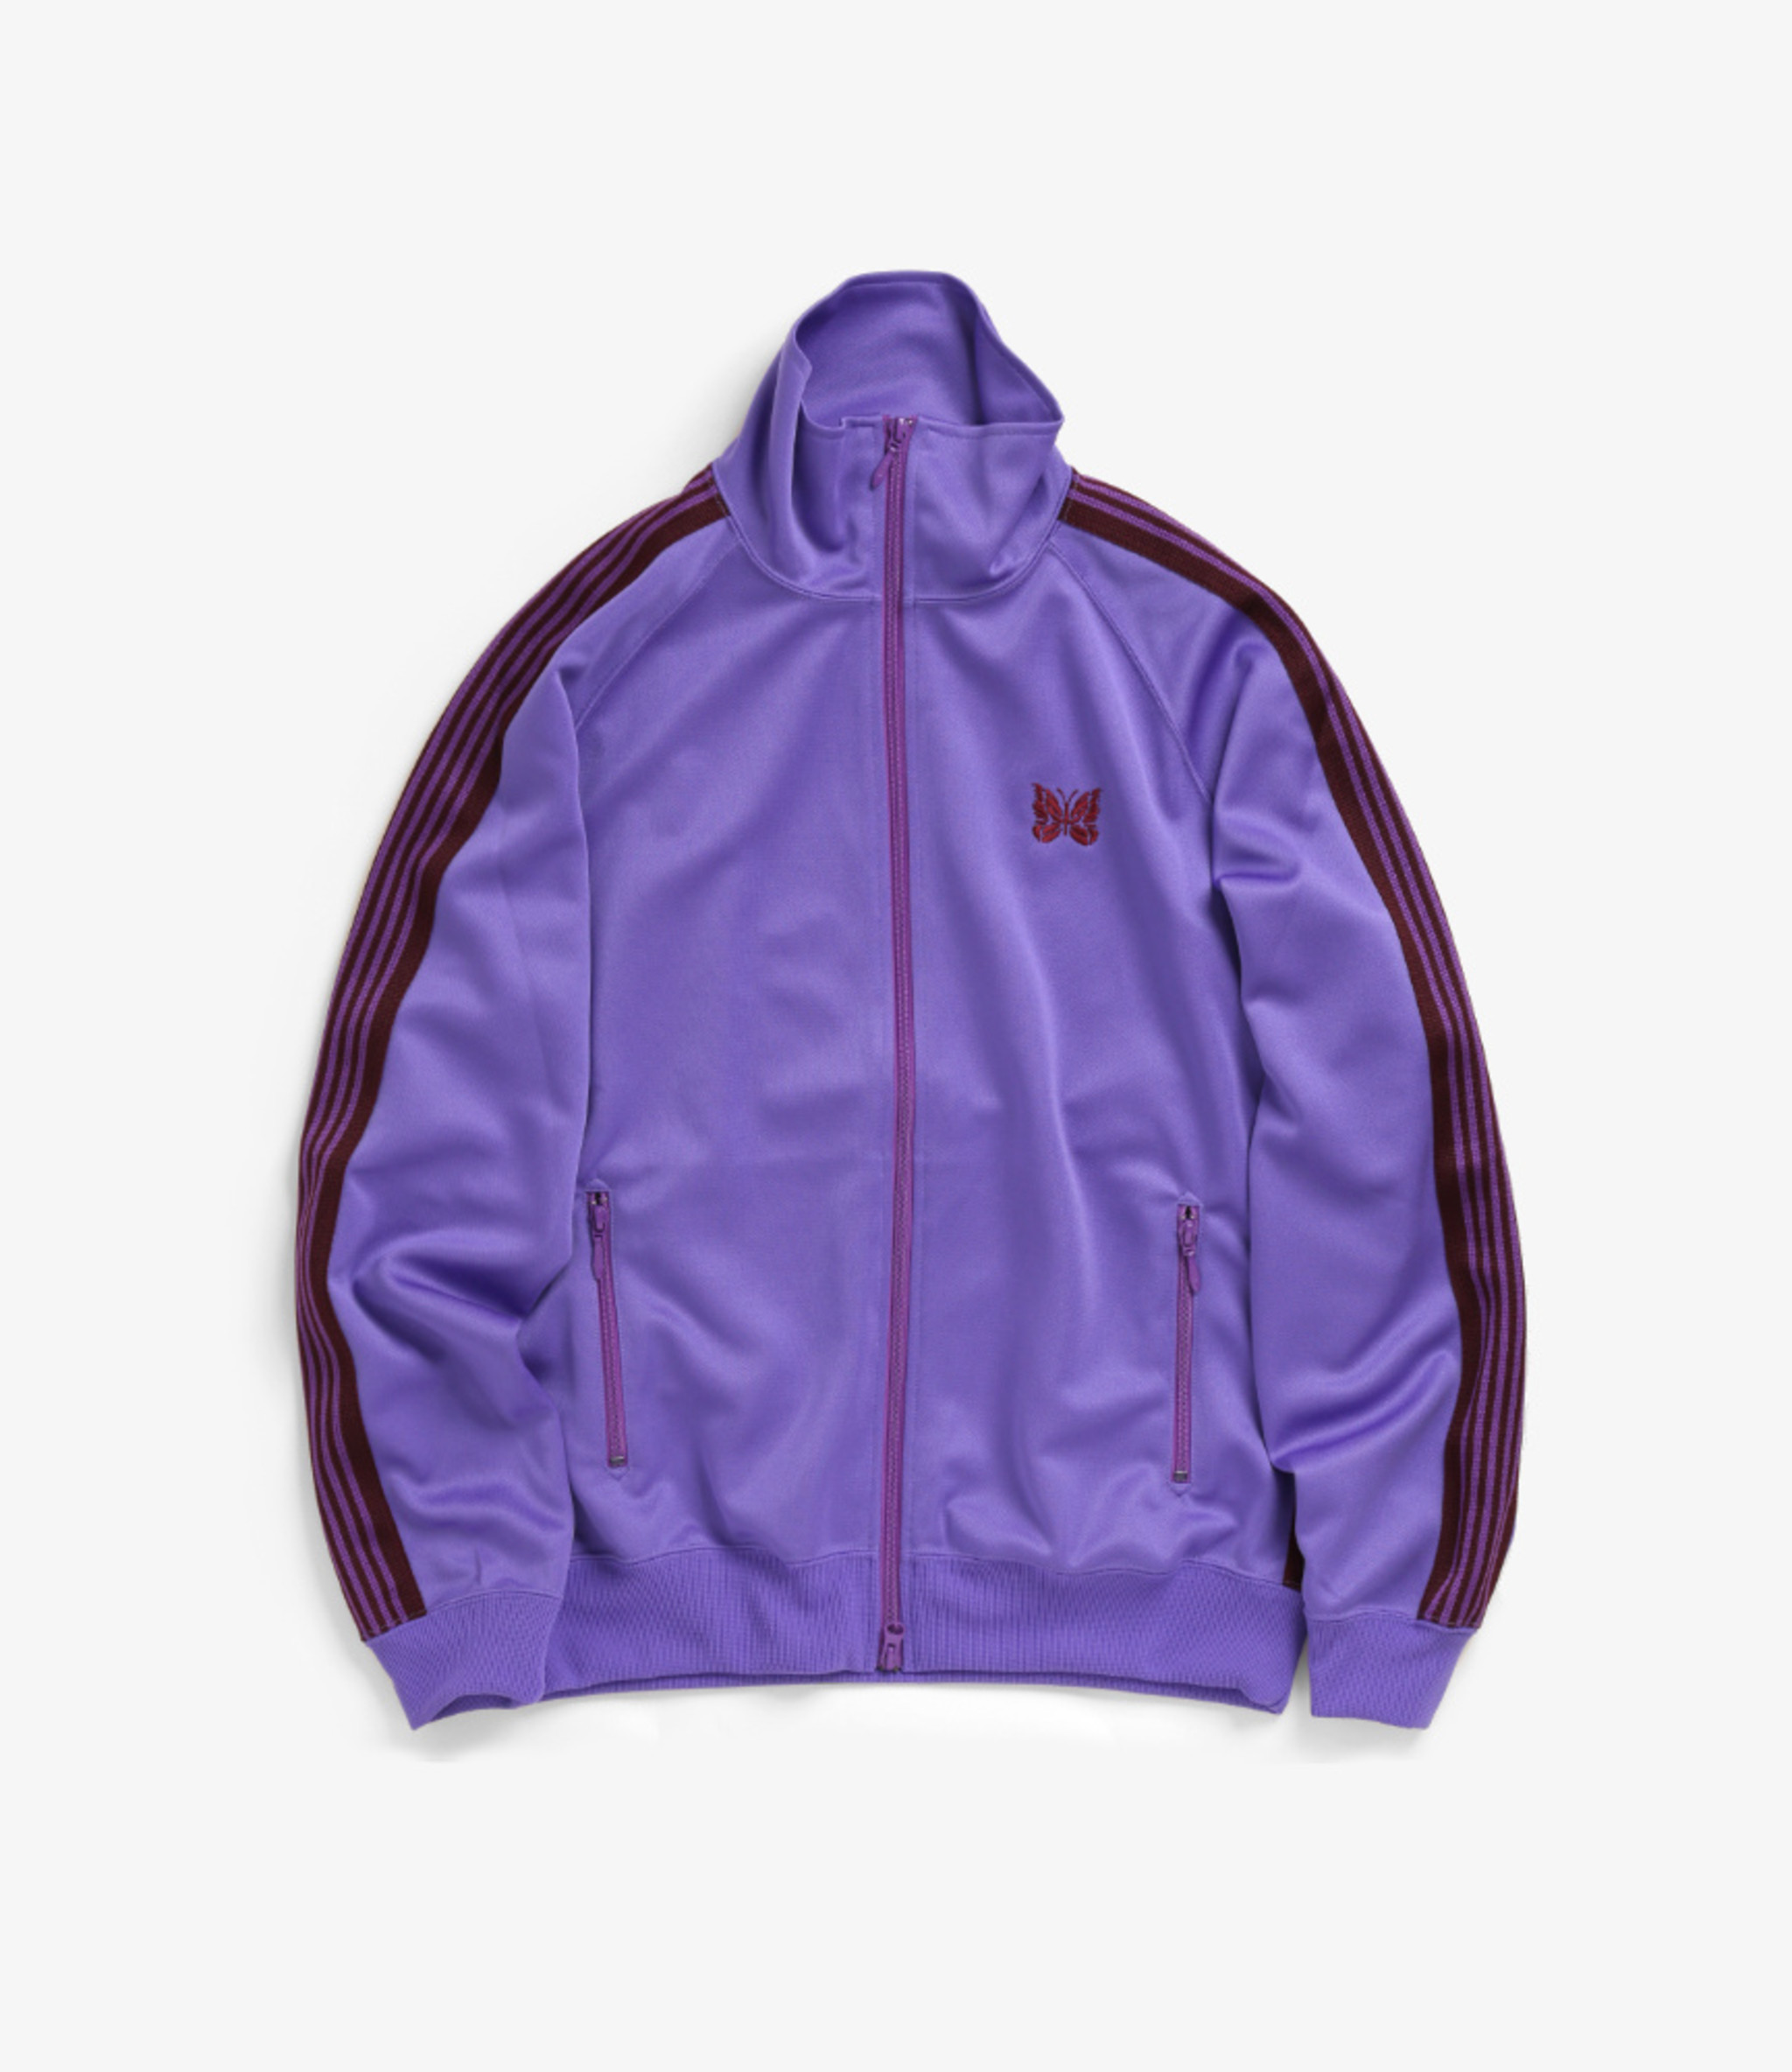 Needles Nepenthes Special Track Jacket - Poly Smooth